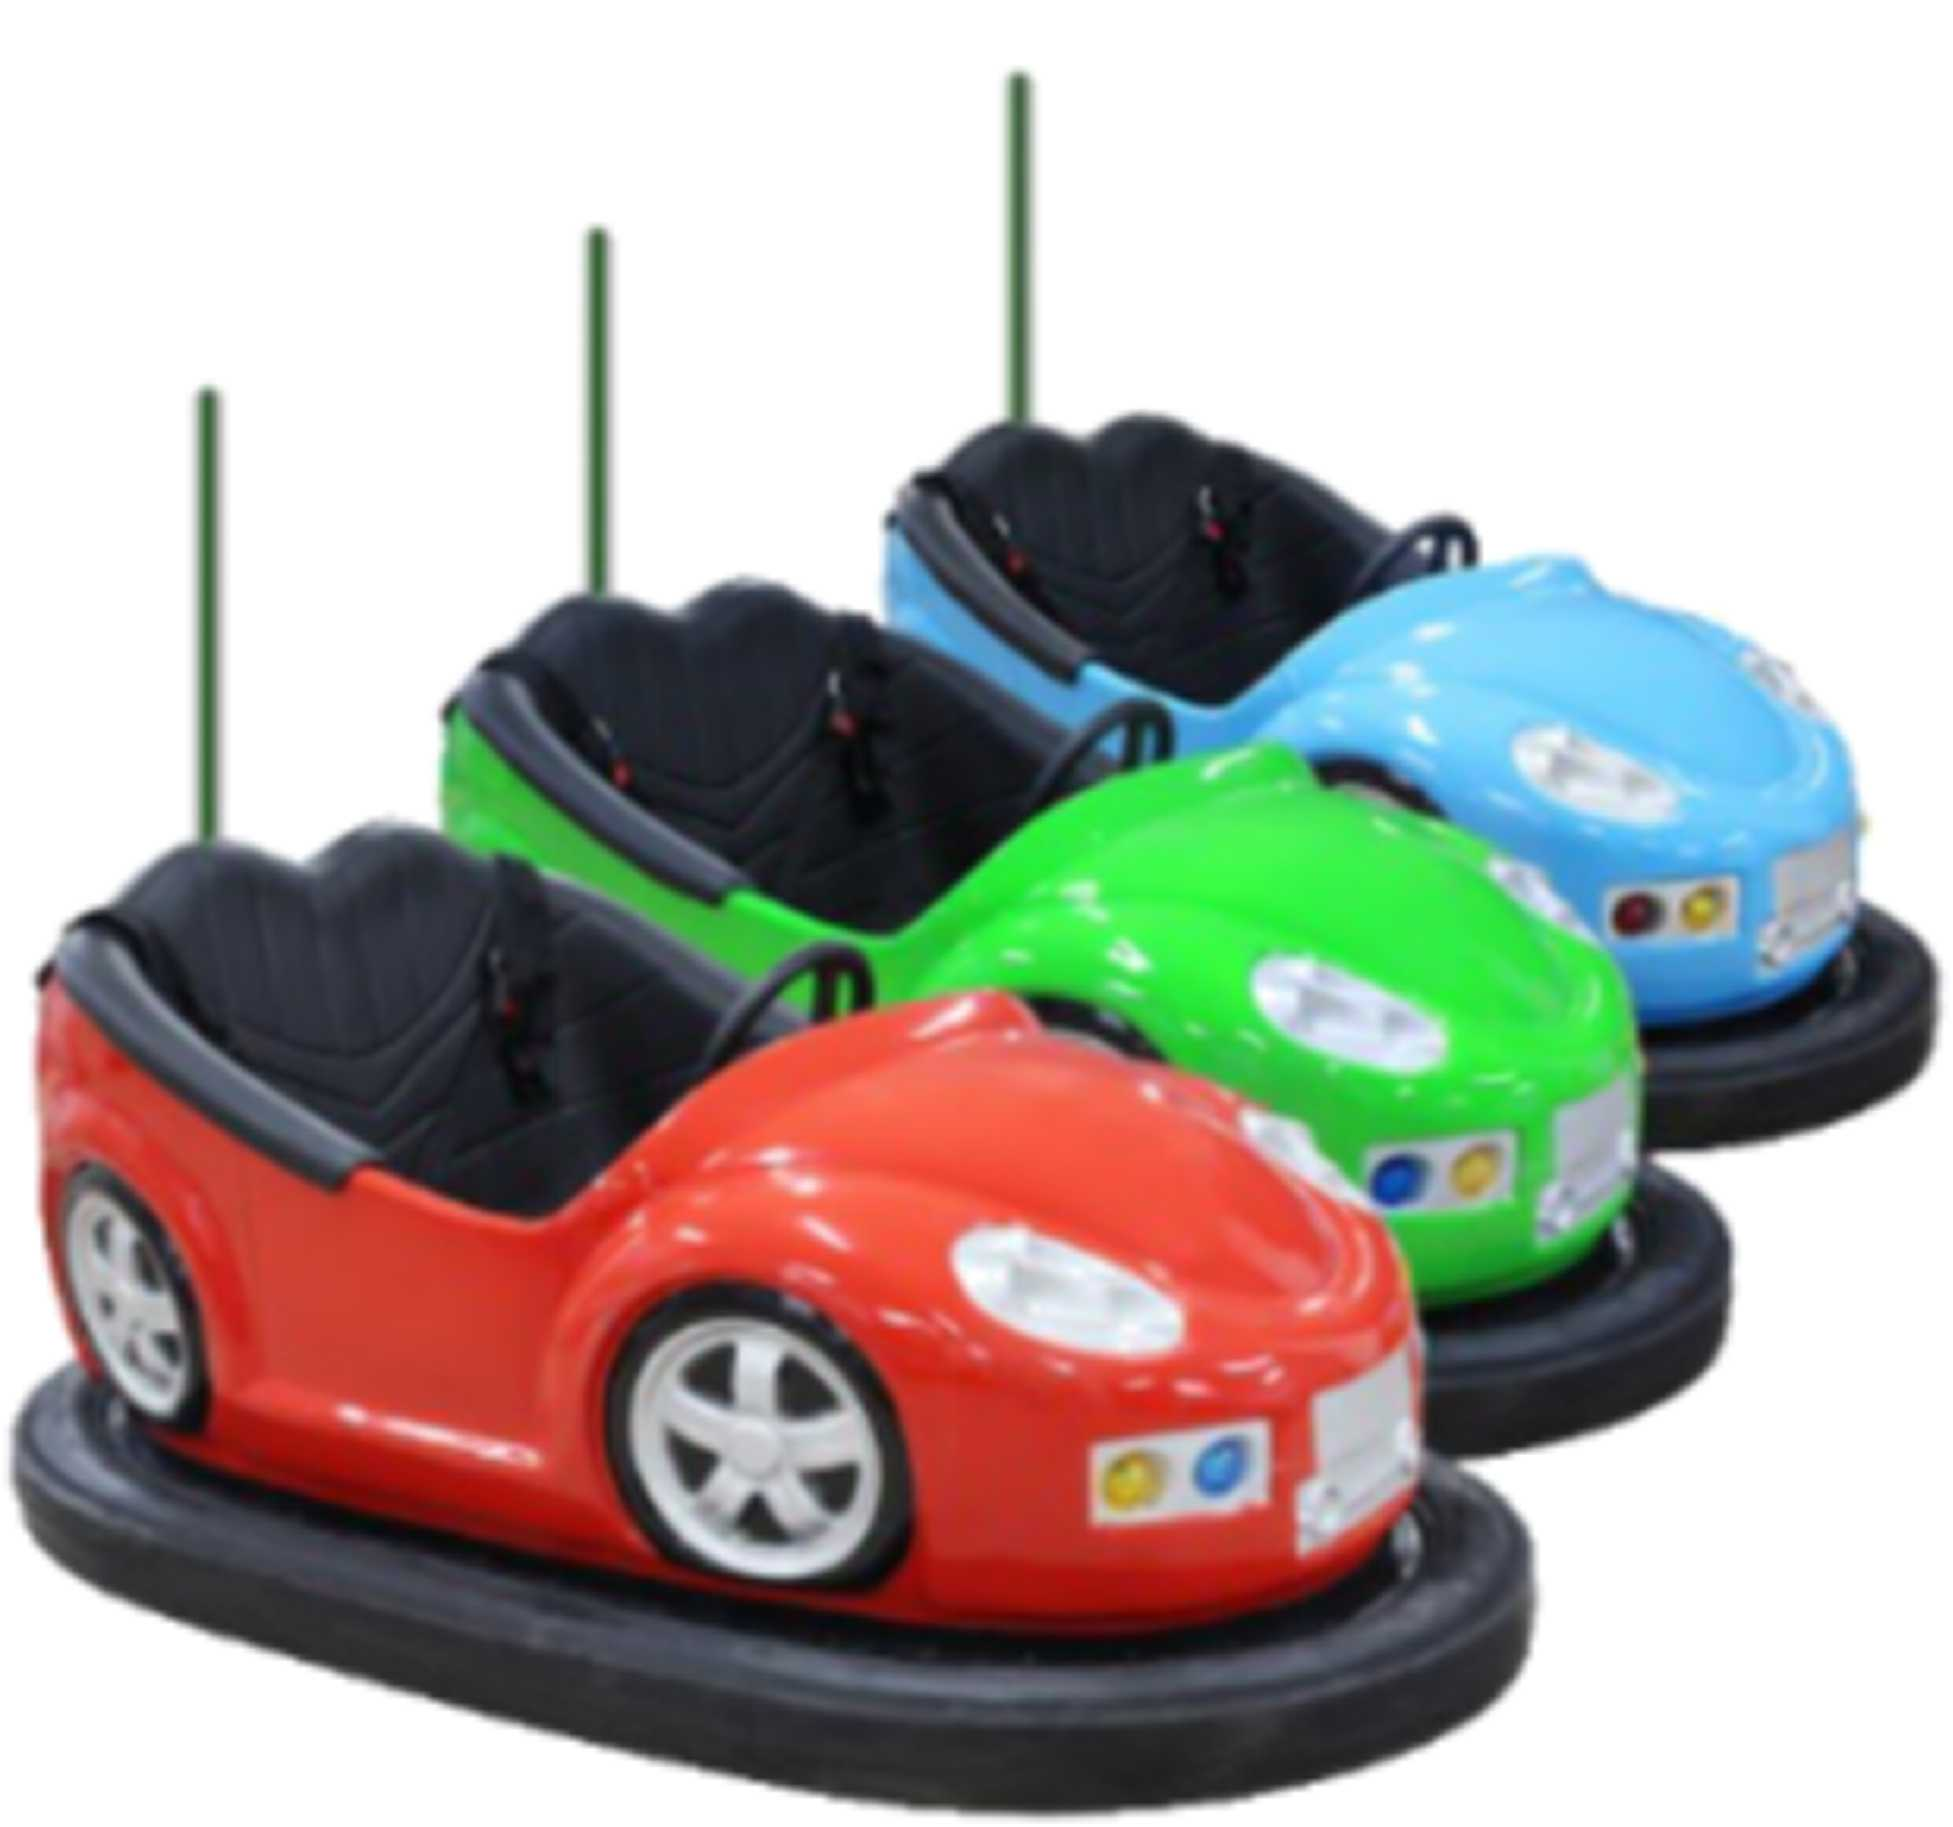 ground-grid Electric Bumper car